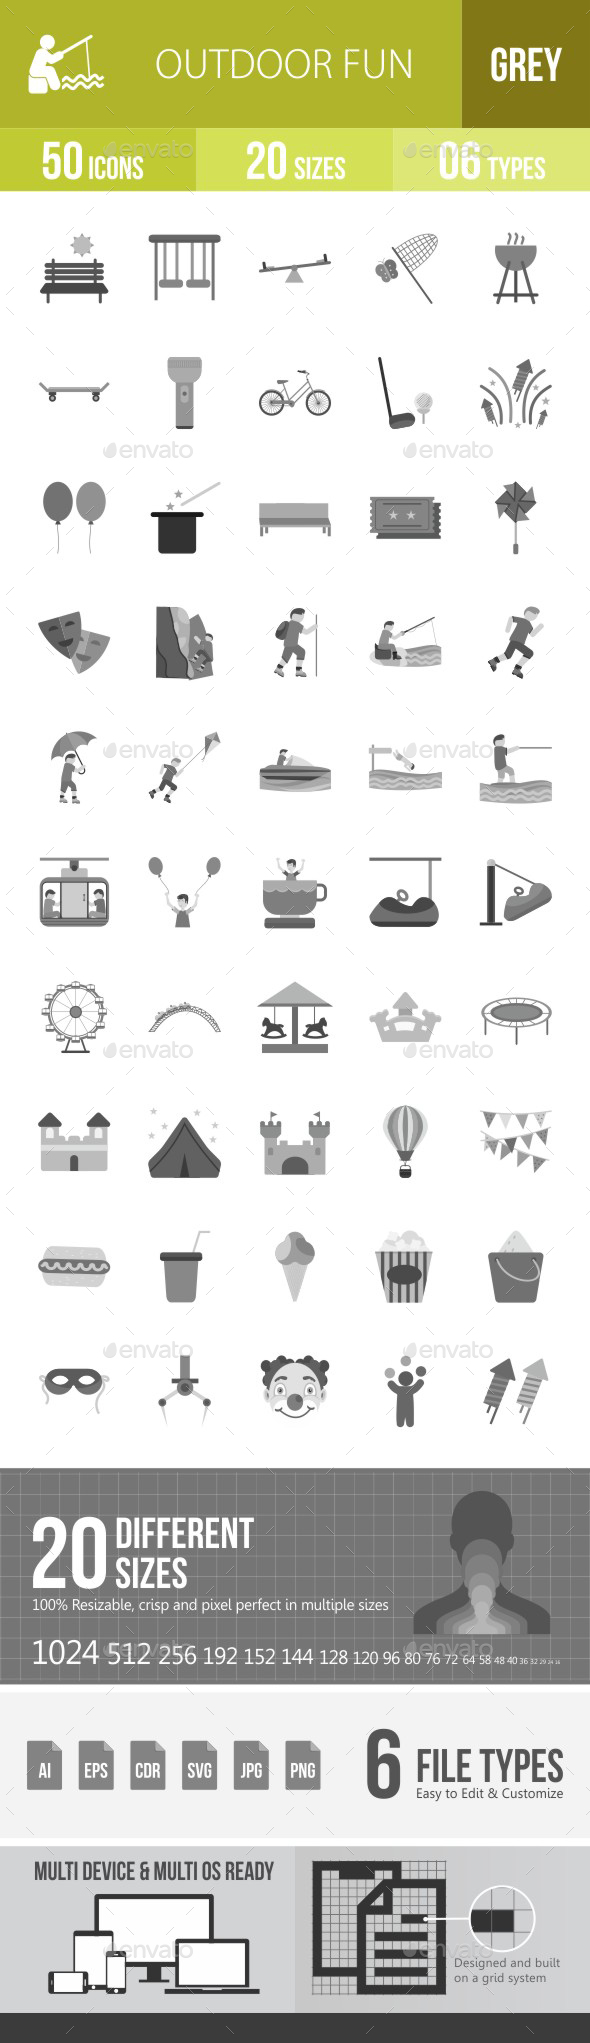 Outdoor Fun Flat Round Icons - Icons